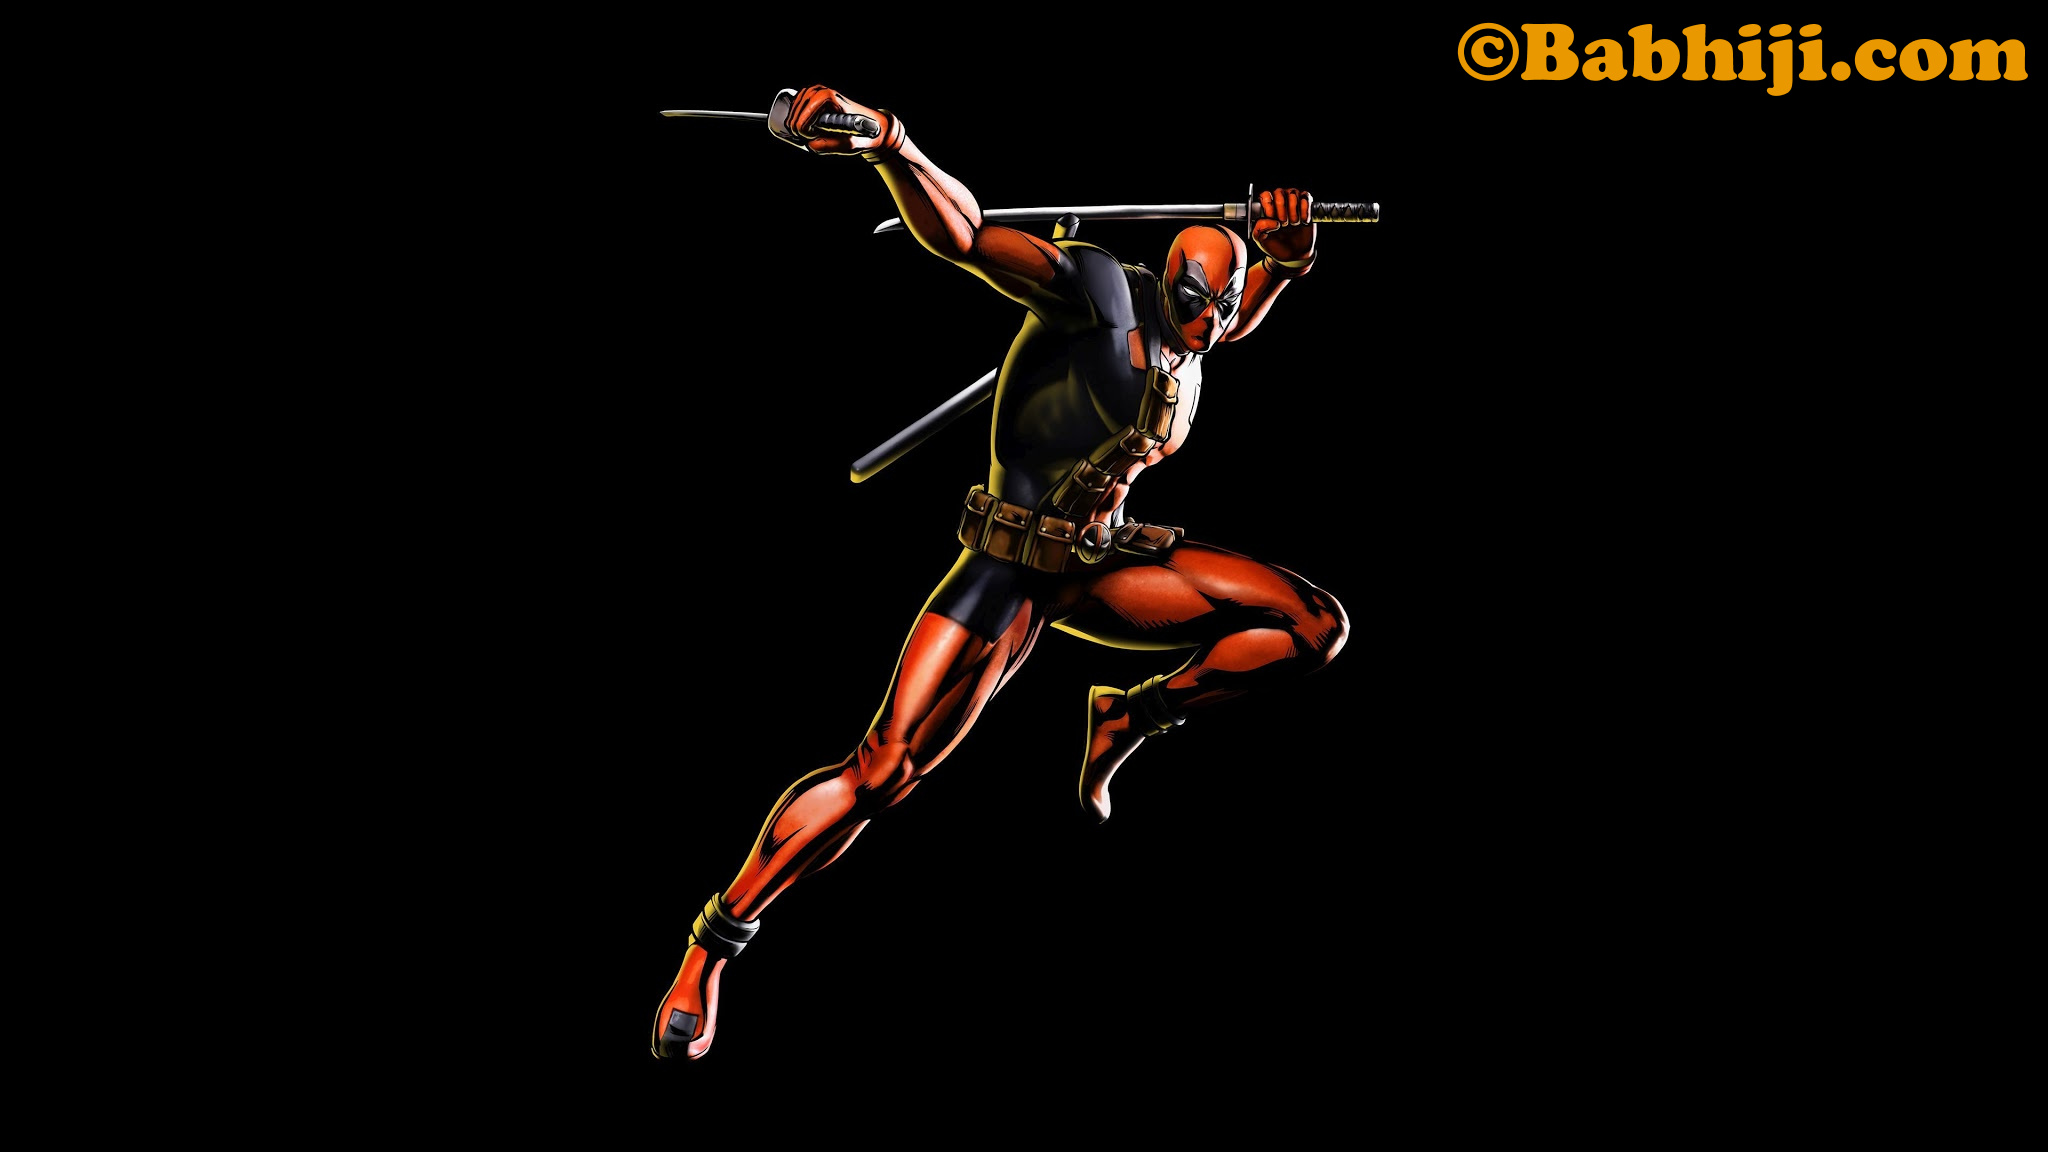 Deadpool, Deadpool Images, Deadpool Wallpapers, Deadpool Pictures